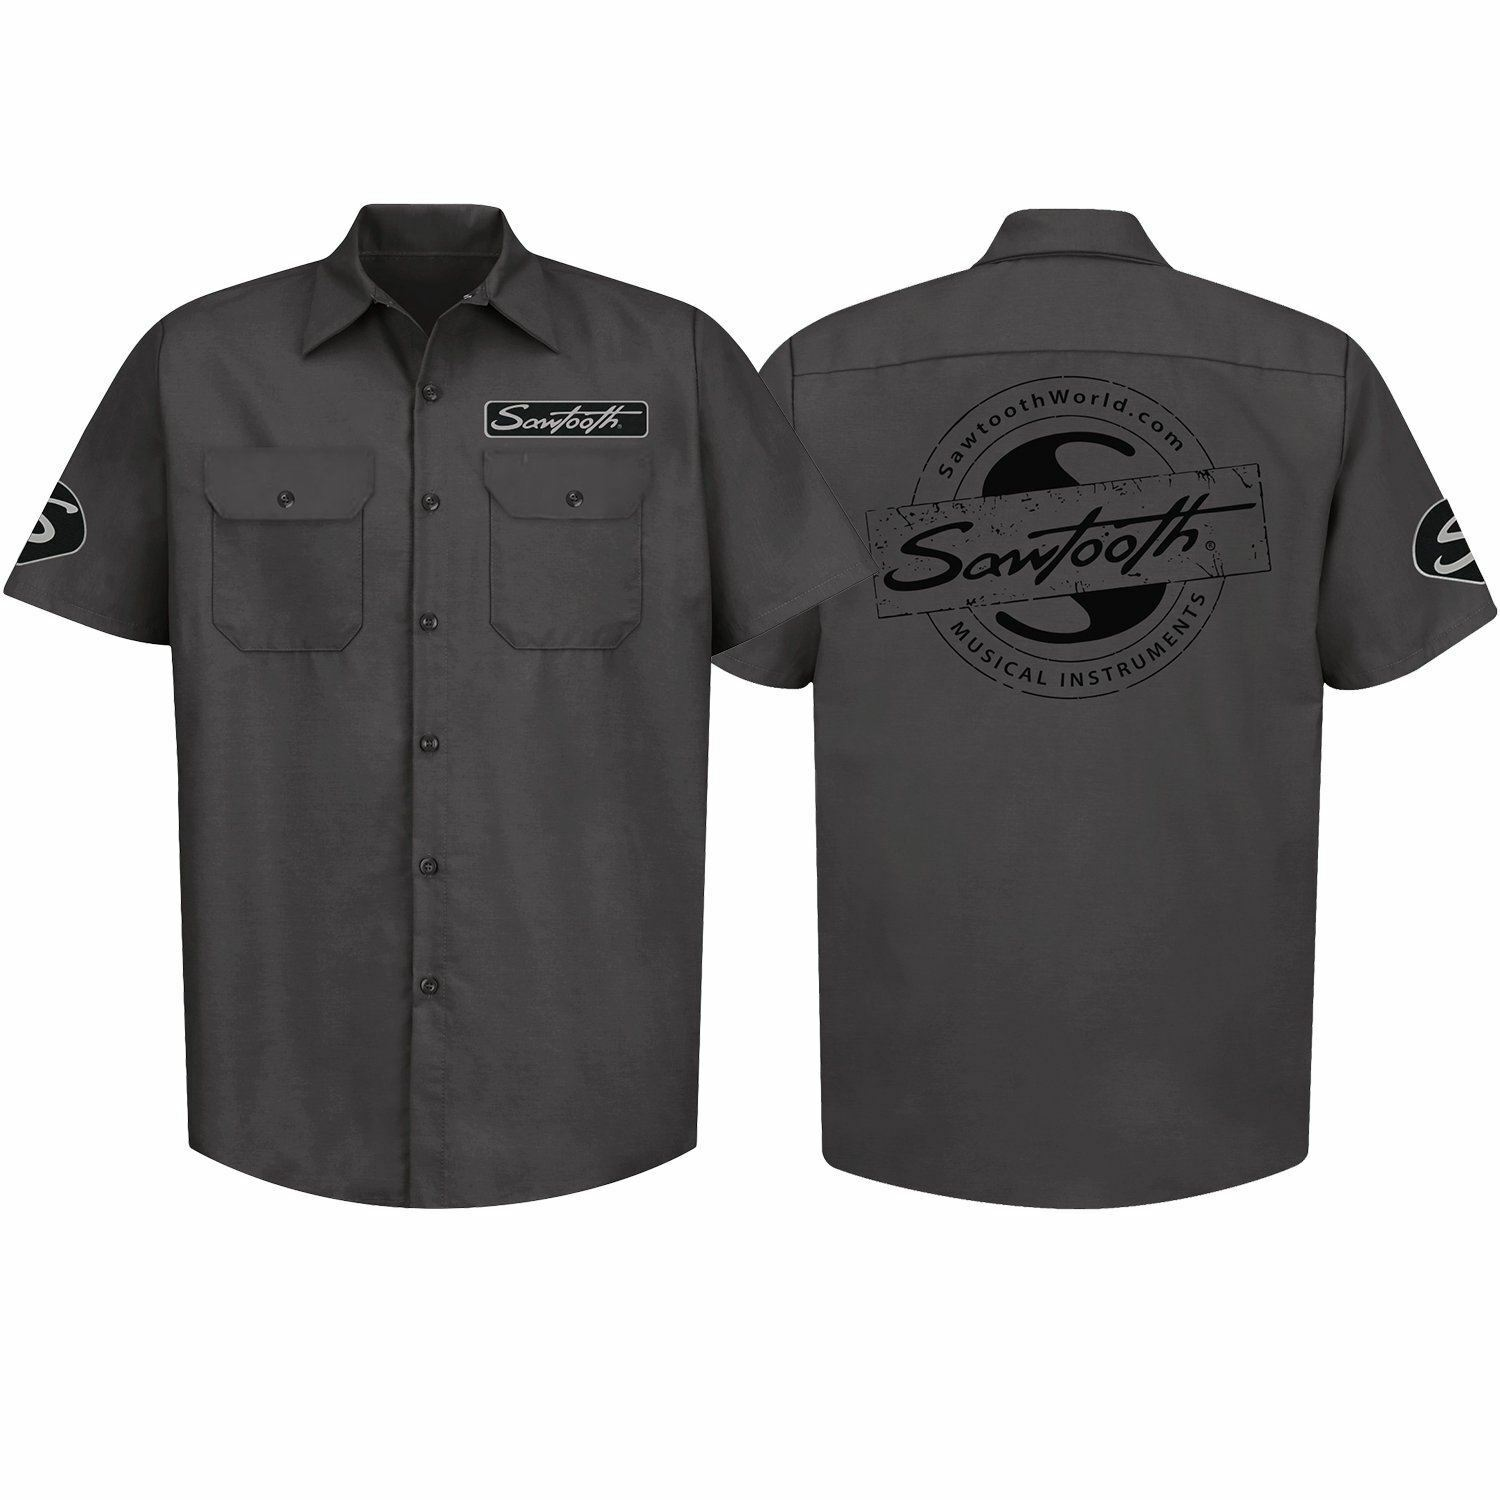 Sawtooth Short Sleeved Work Shirt with Logo